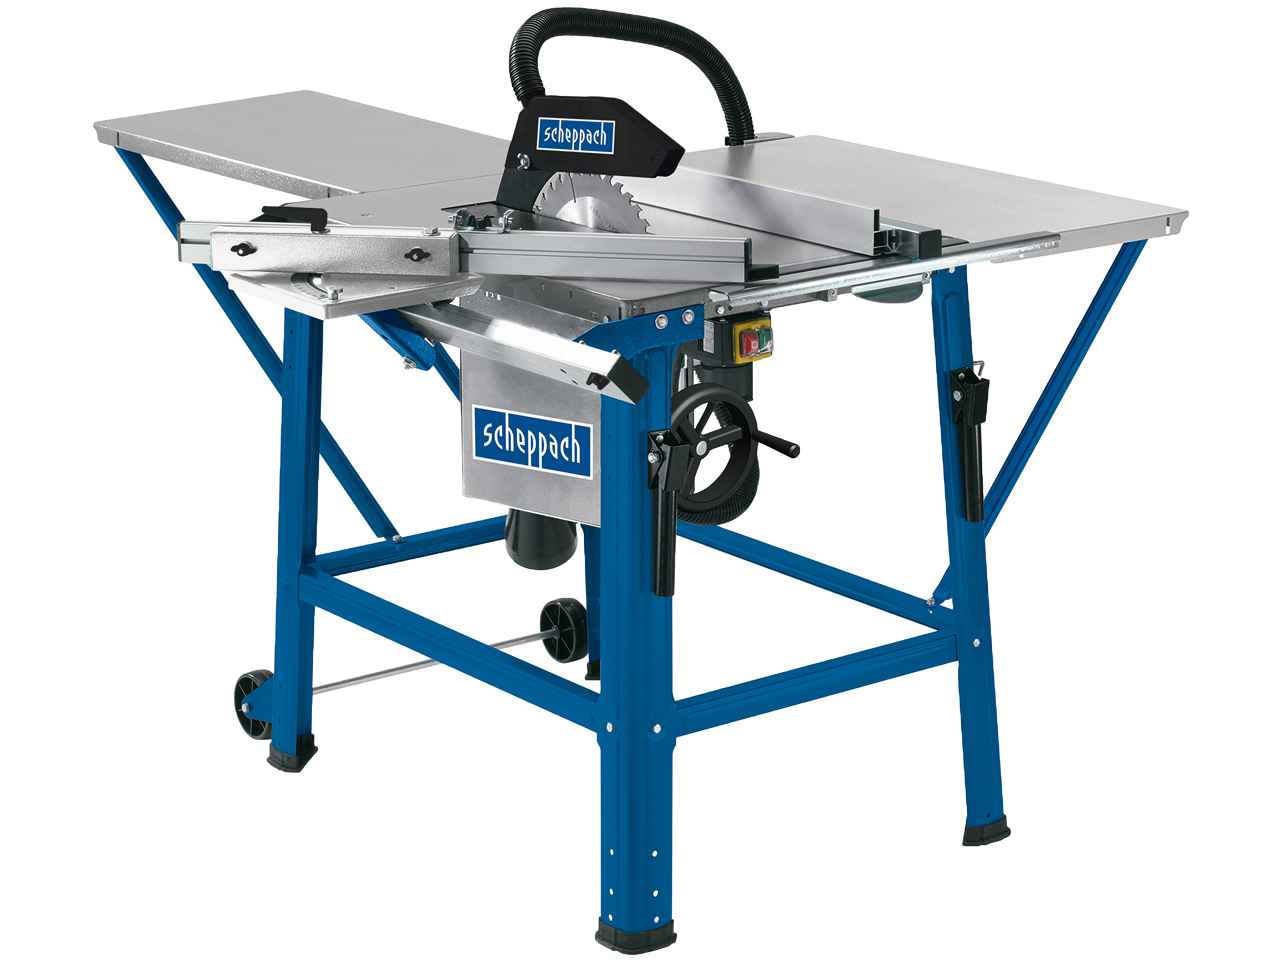 Scheppach Ts310 12 Table Saw Sliding Table Carriage Extension Ebay